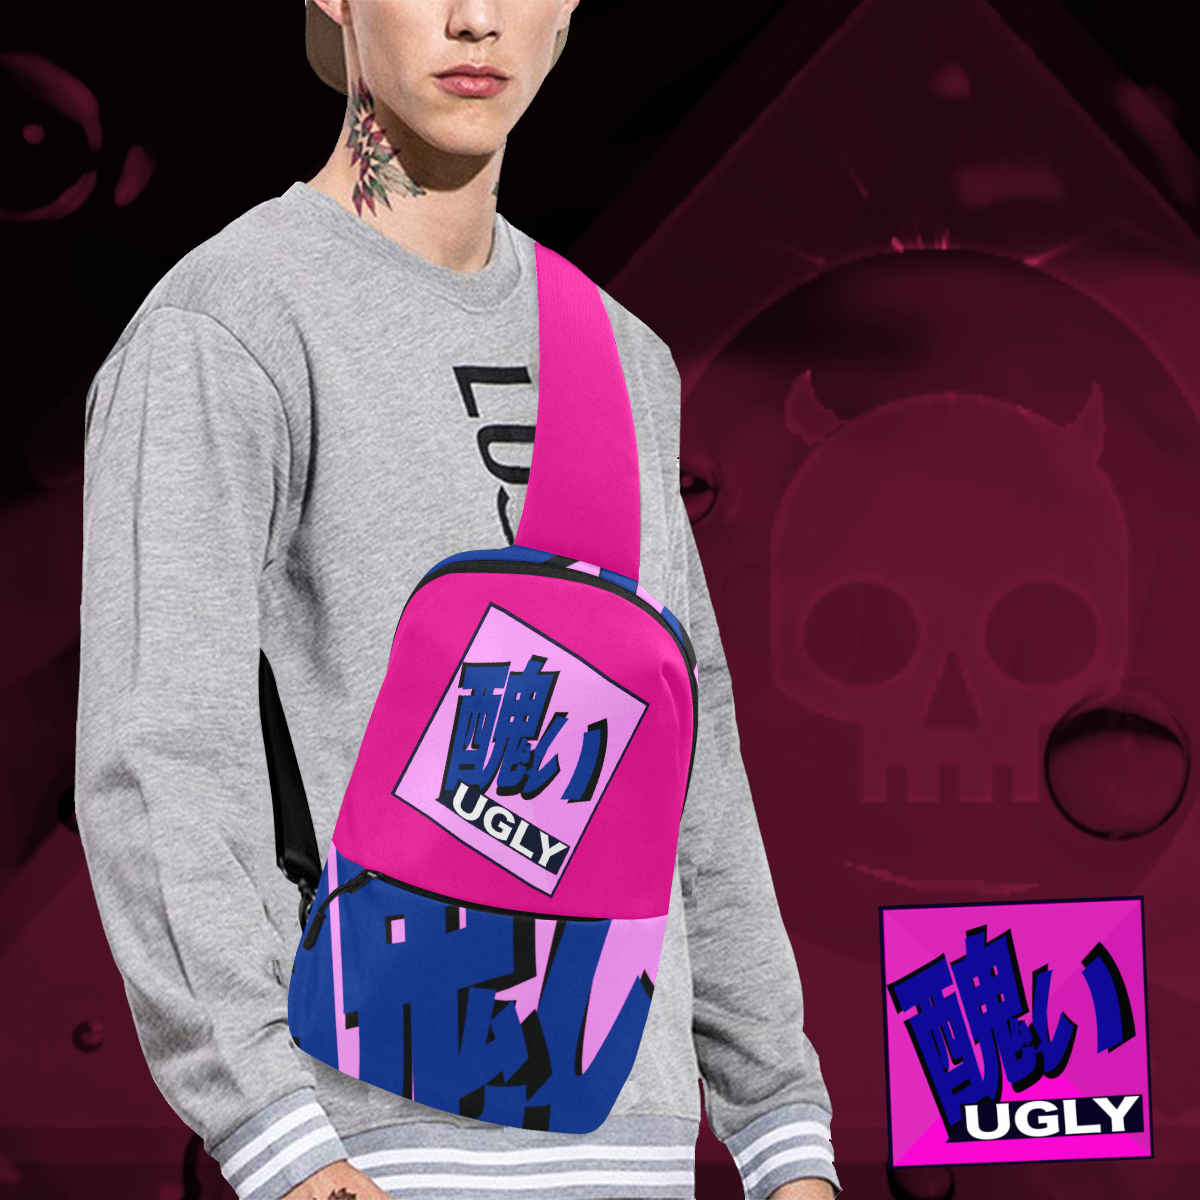 UGLY Logo Chest Bag The Lowest of Low Bubblegum